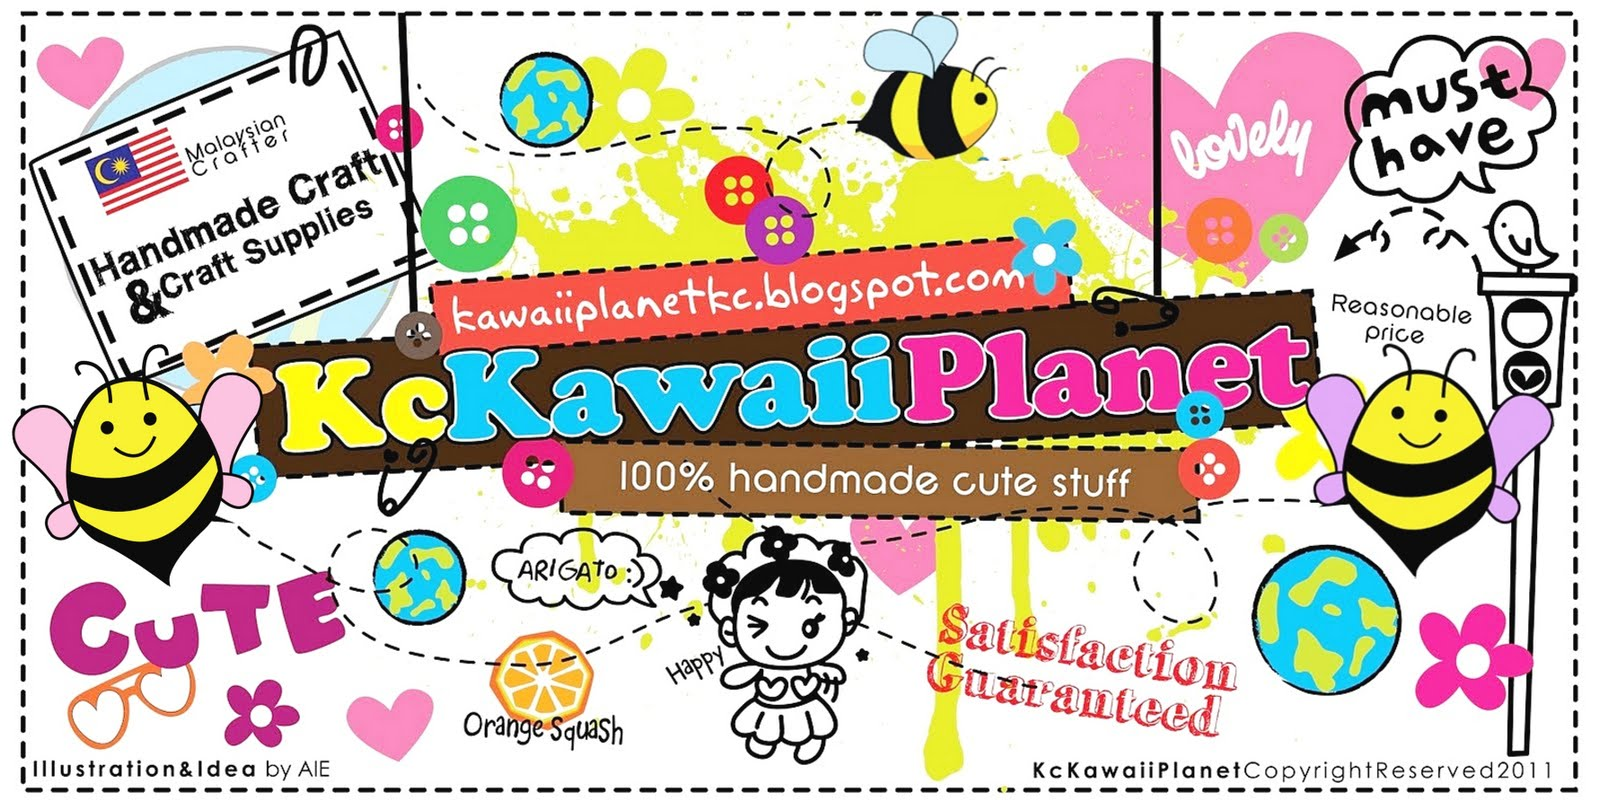 KC kaWaii PLaNeT